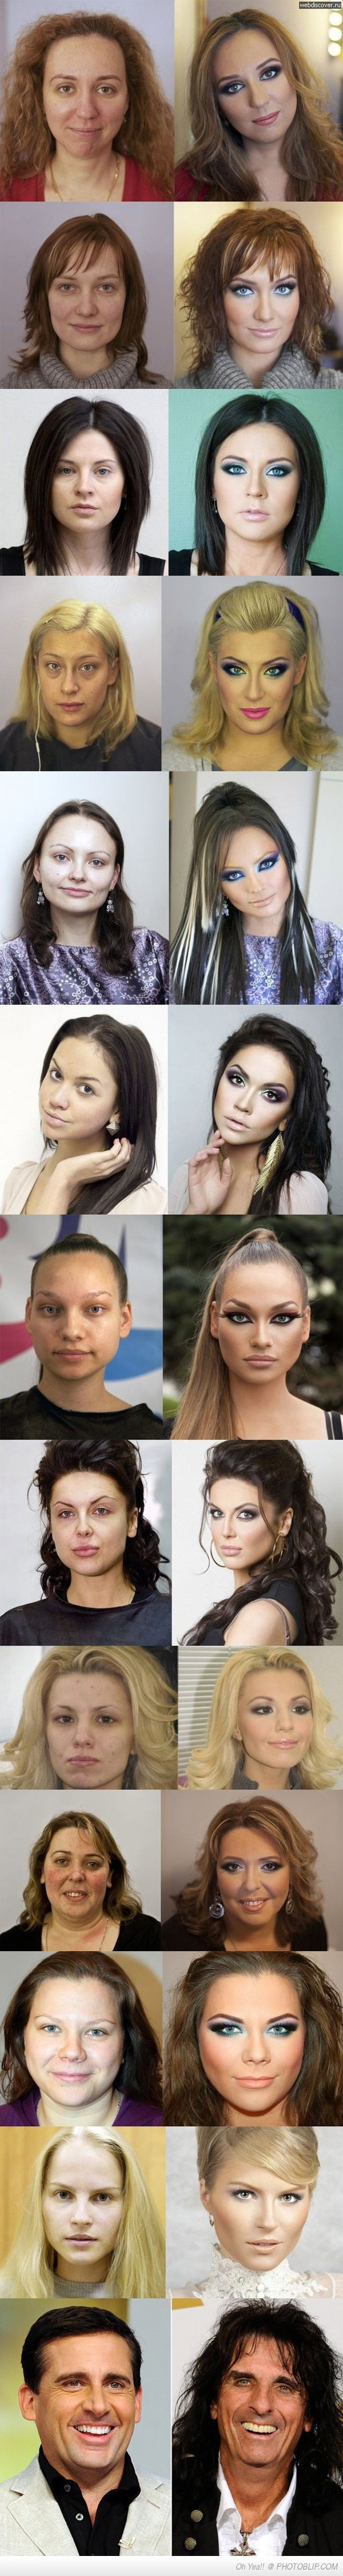 Makeup Before & After (fixed)